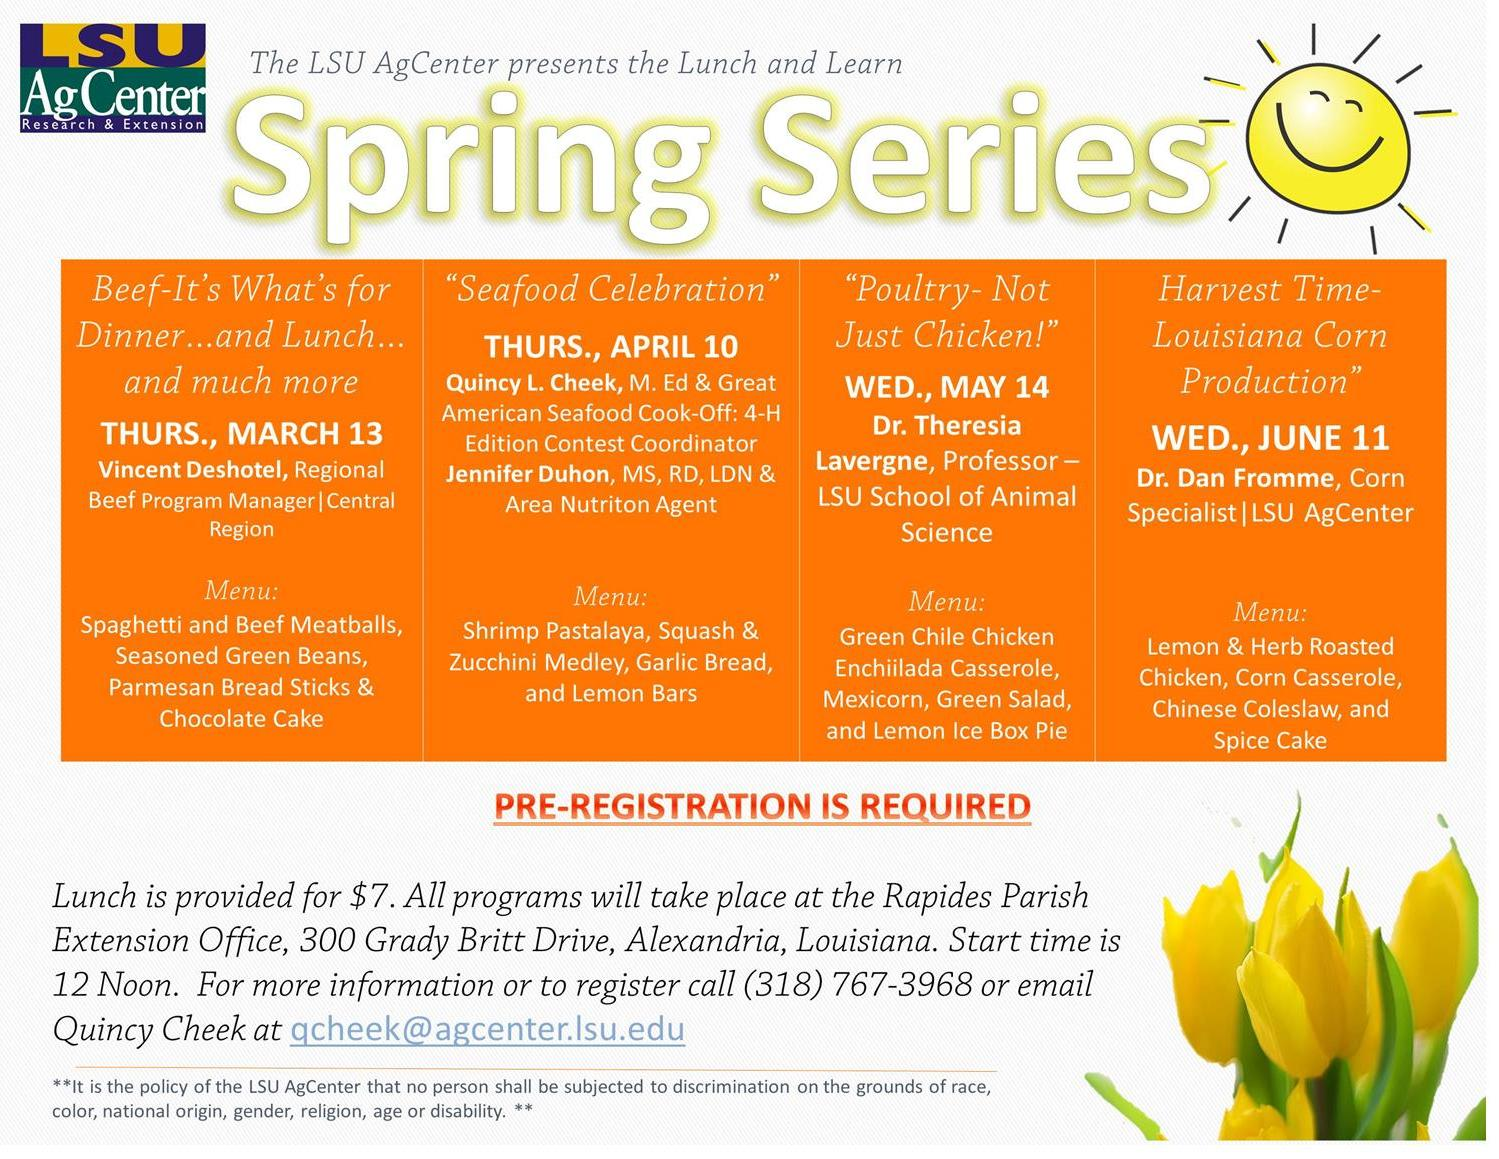 Flyer for 2014 Spring Lunch and Learn Series